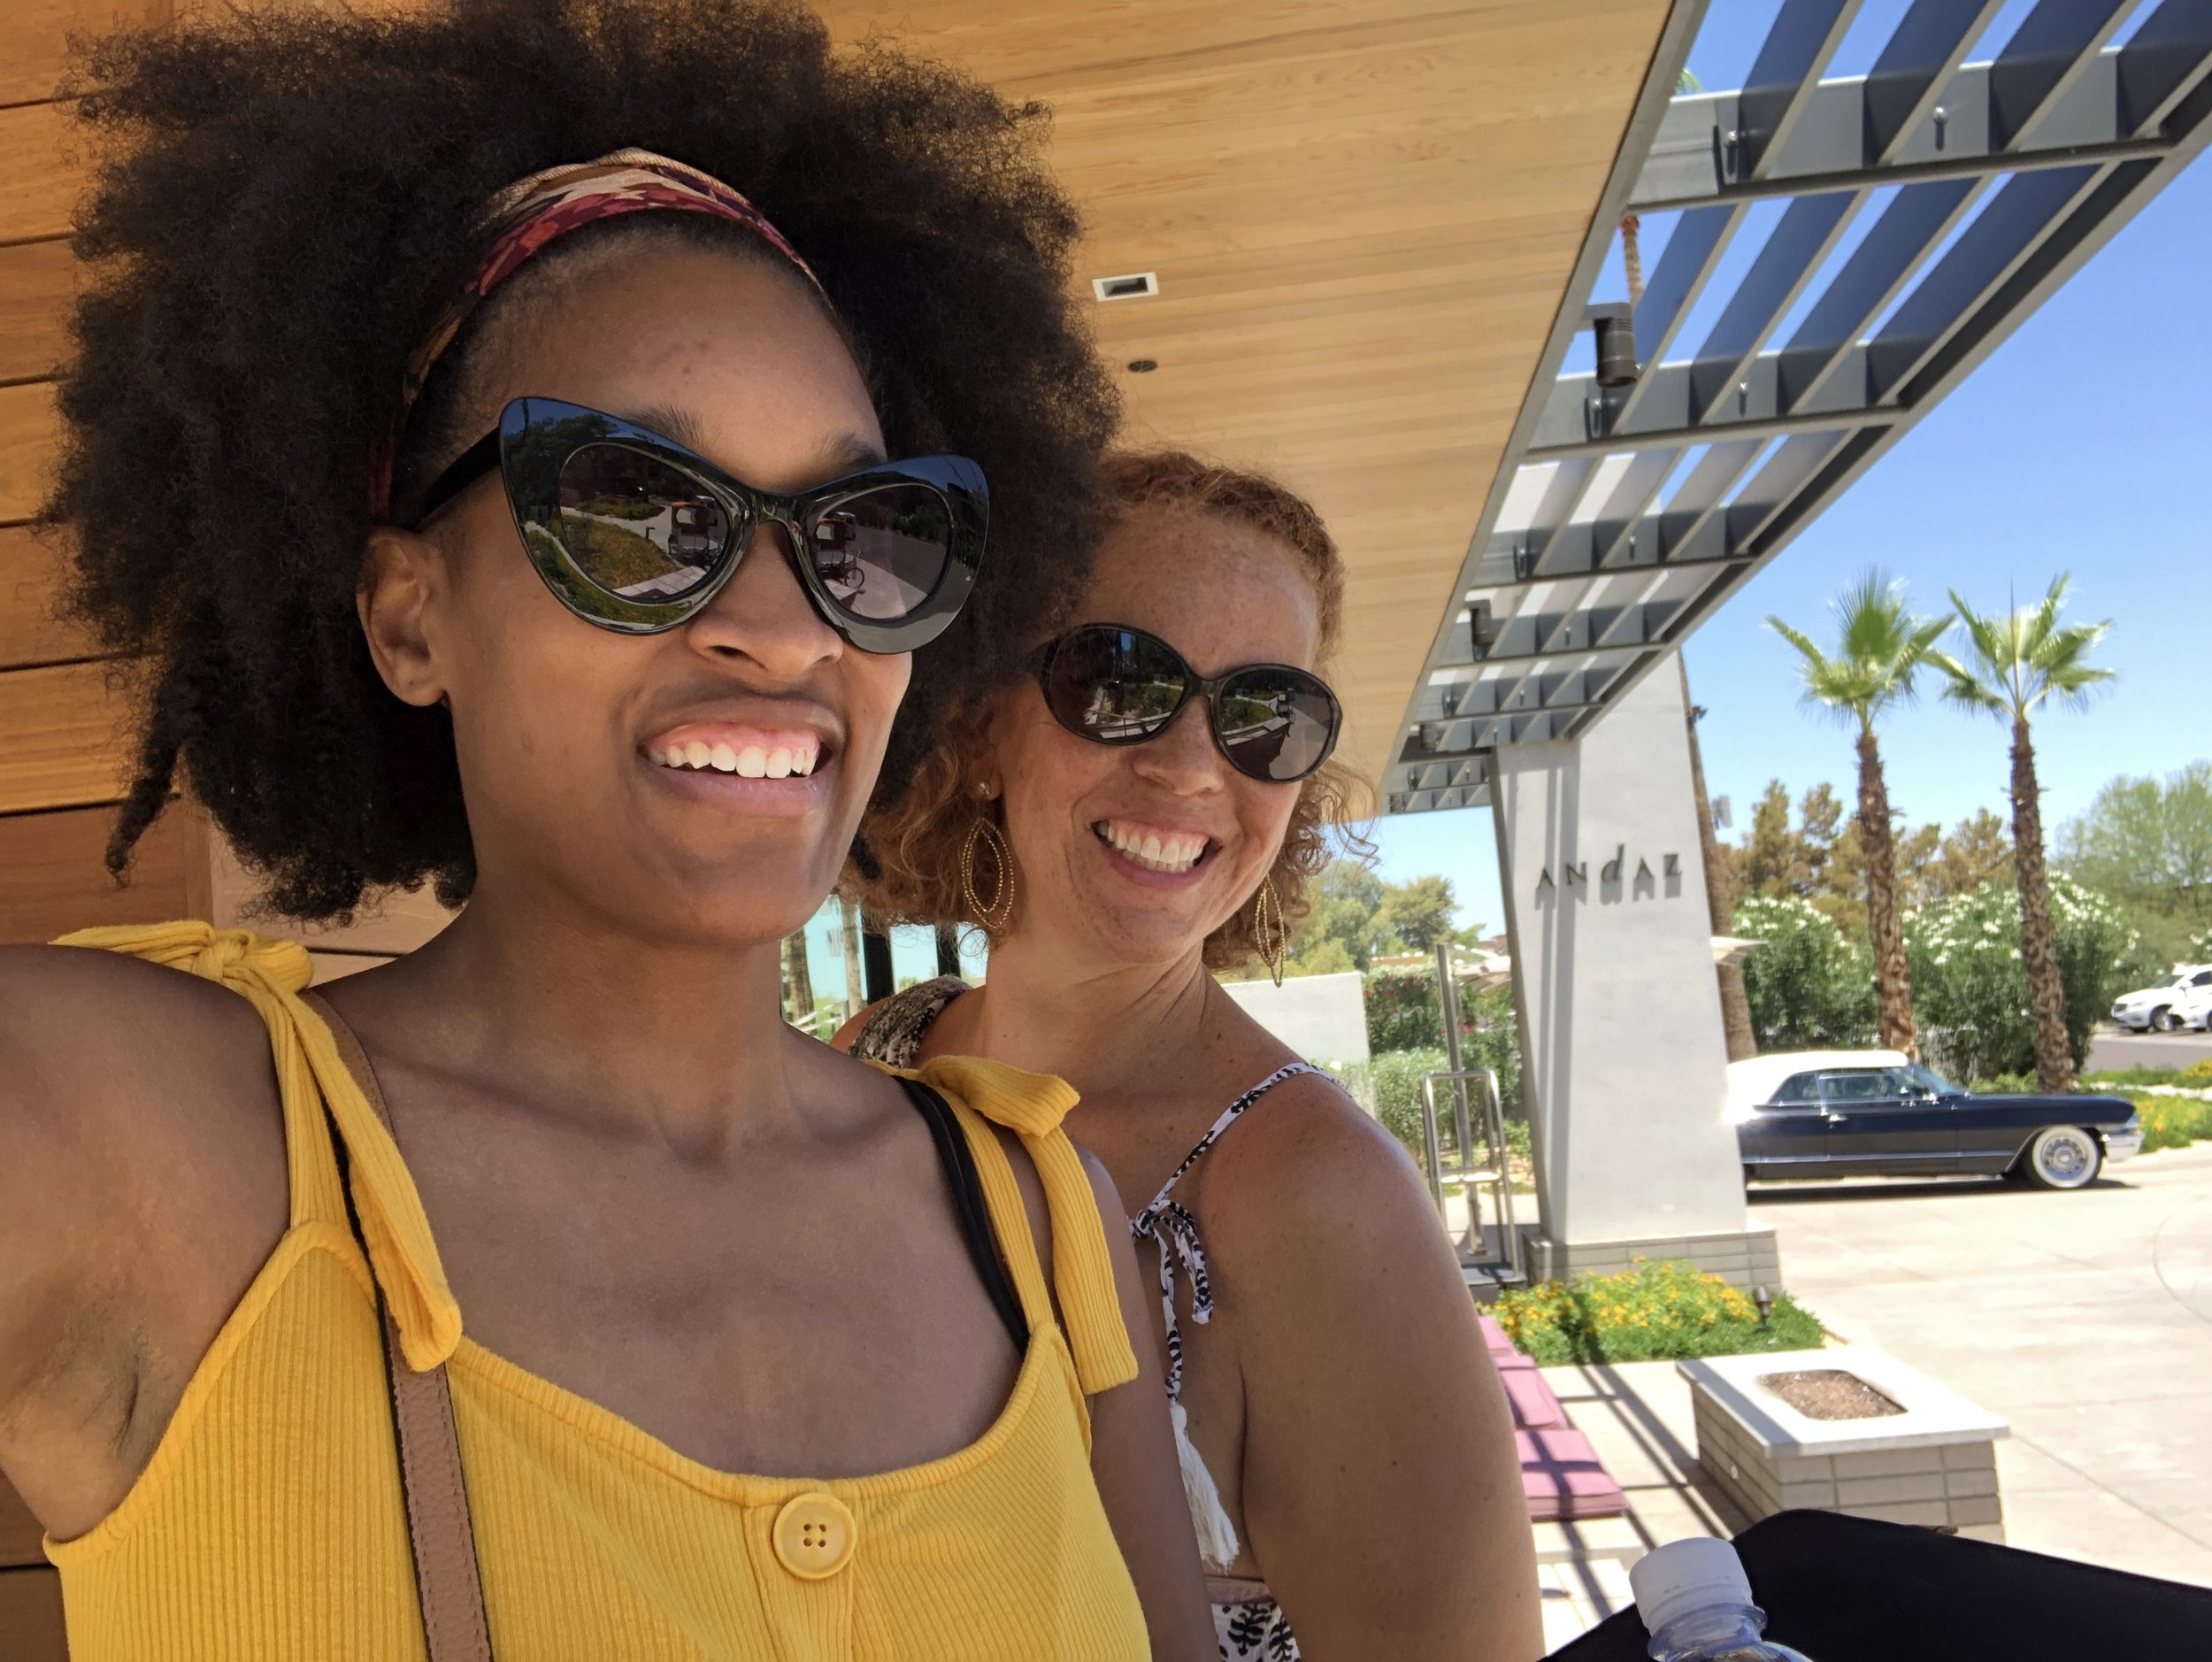 Touring and location scouting at Andaz Scottsdale Resort & Spa